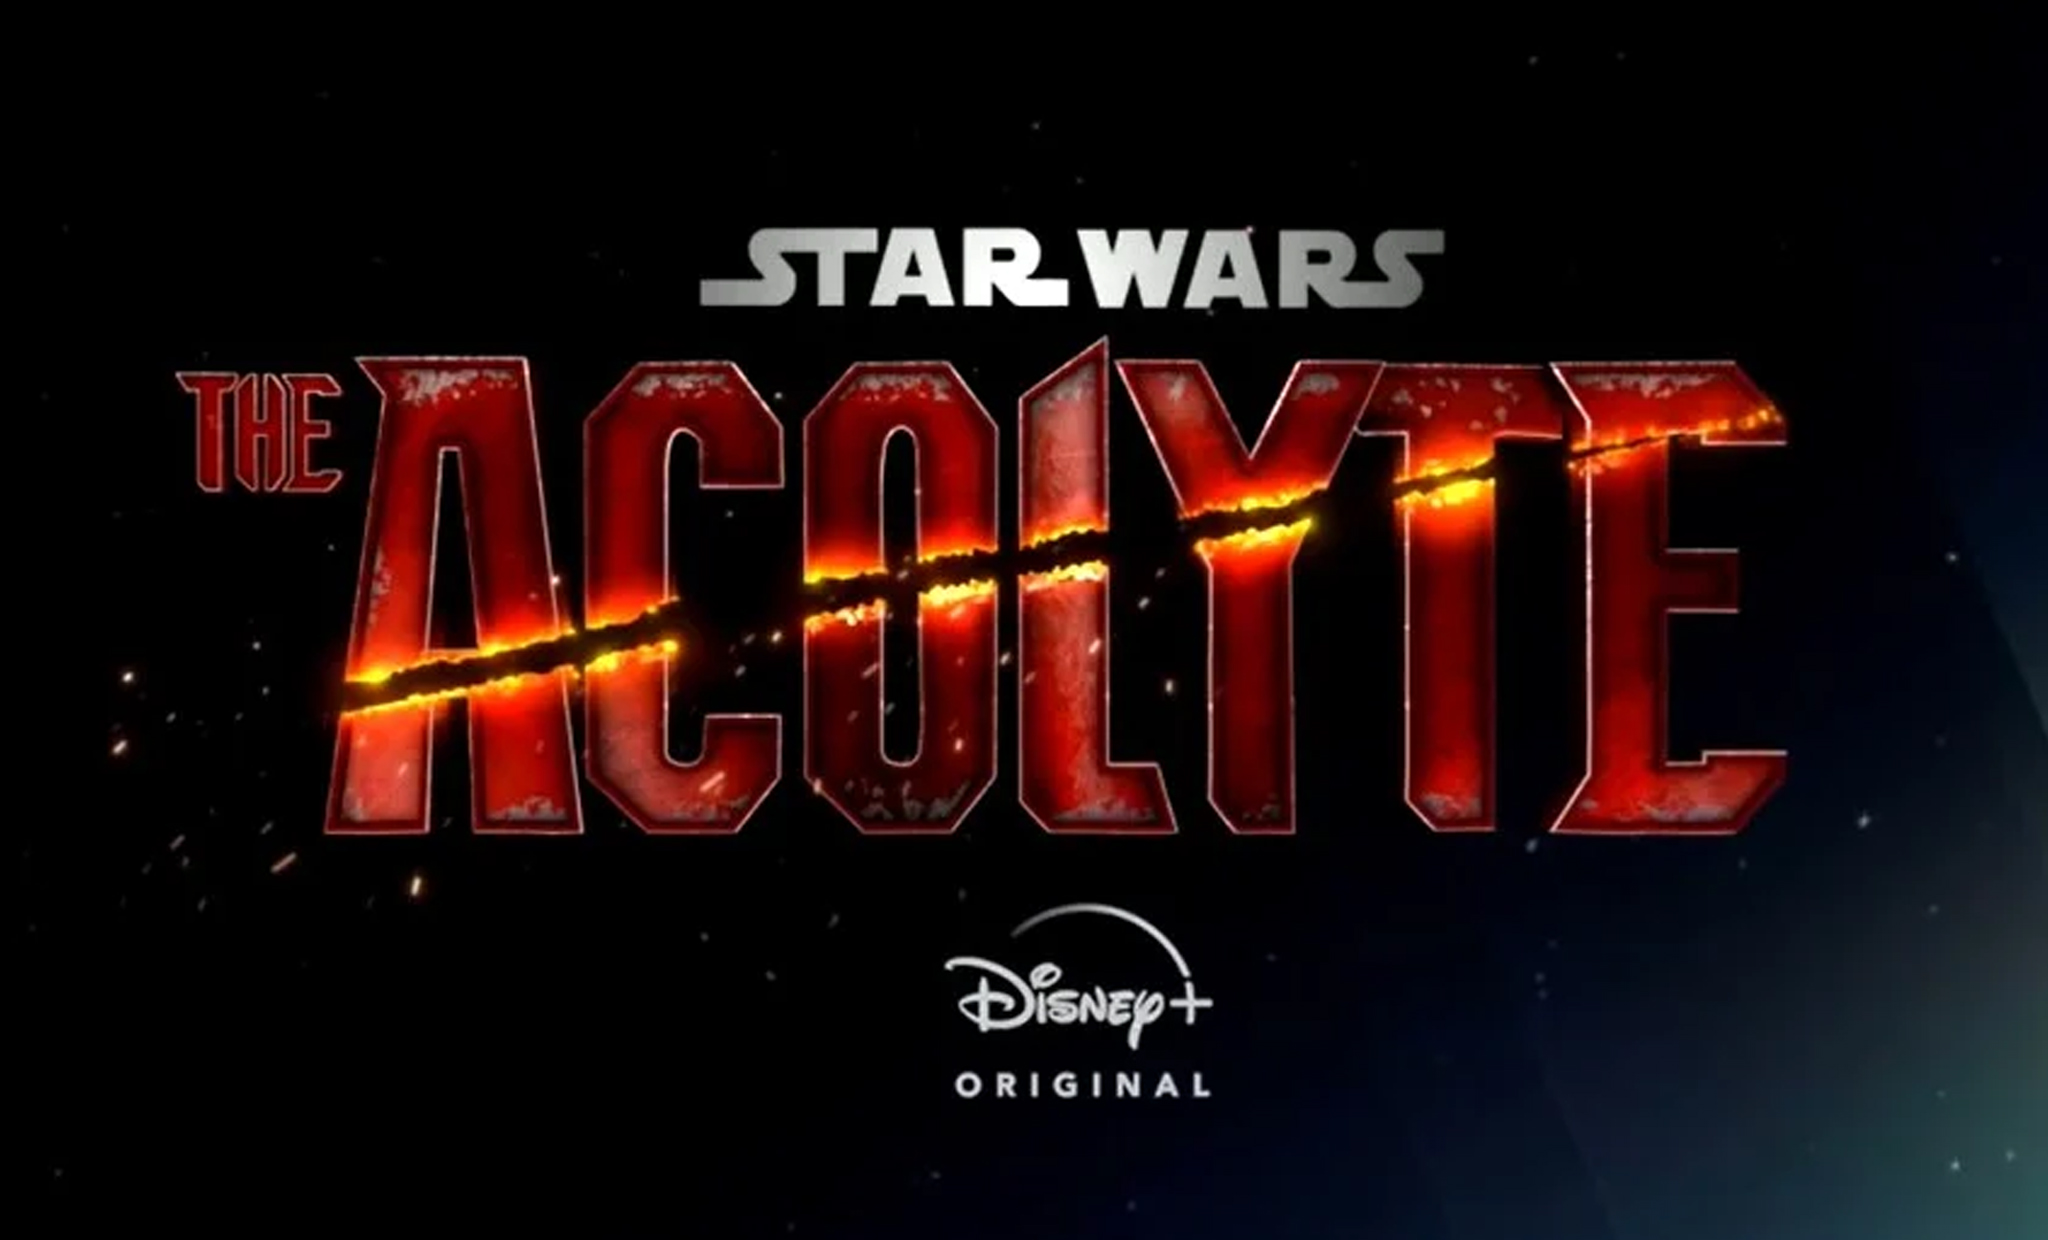 star wars acolyte production